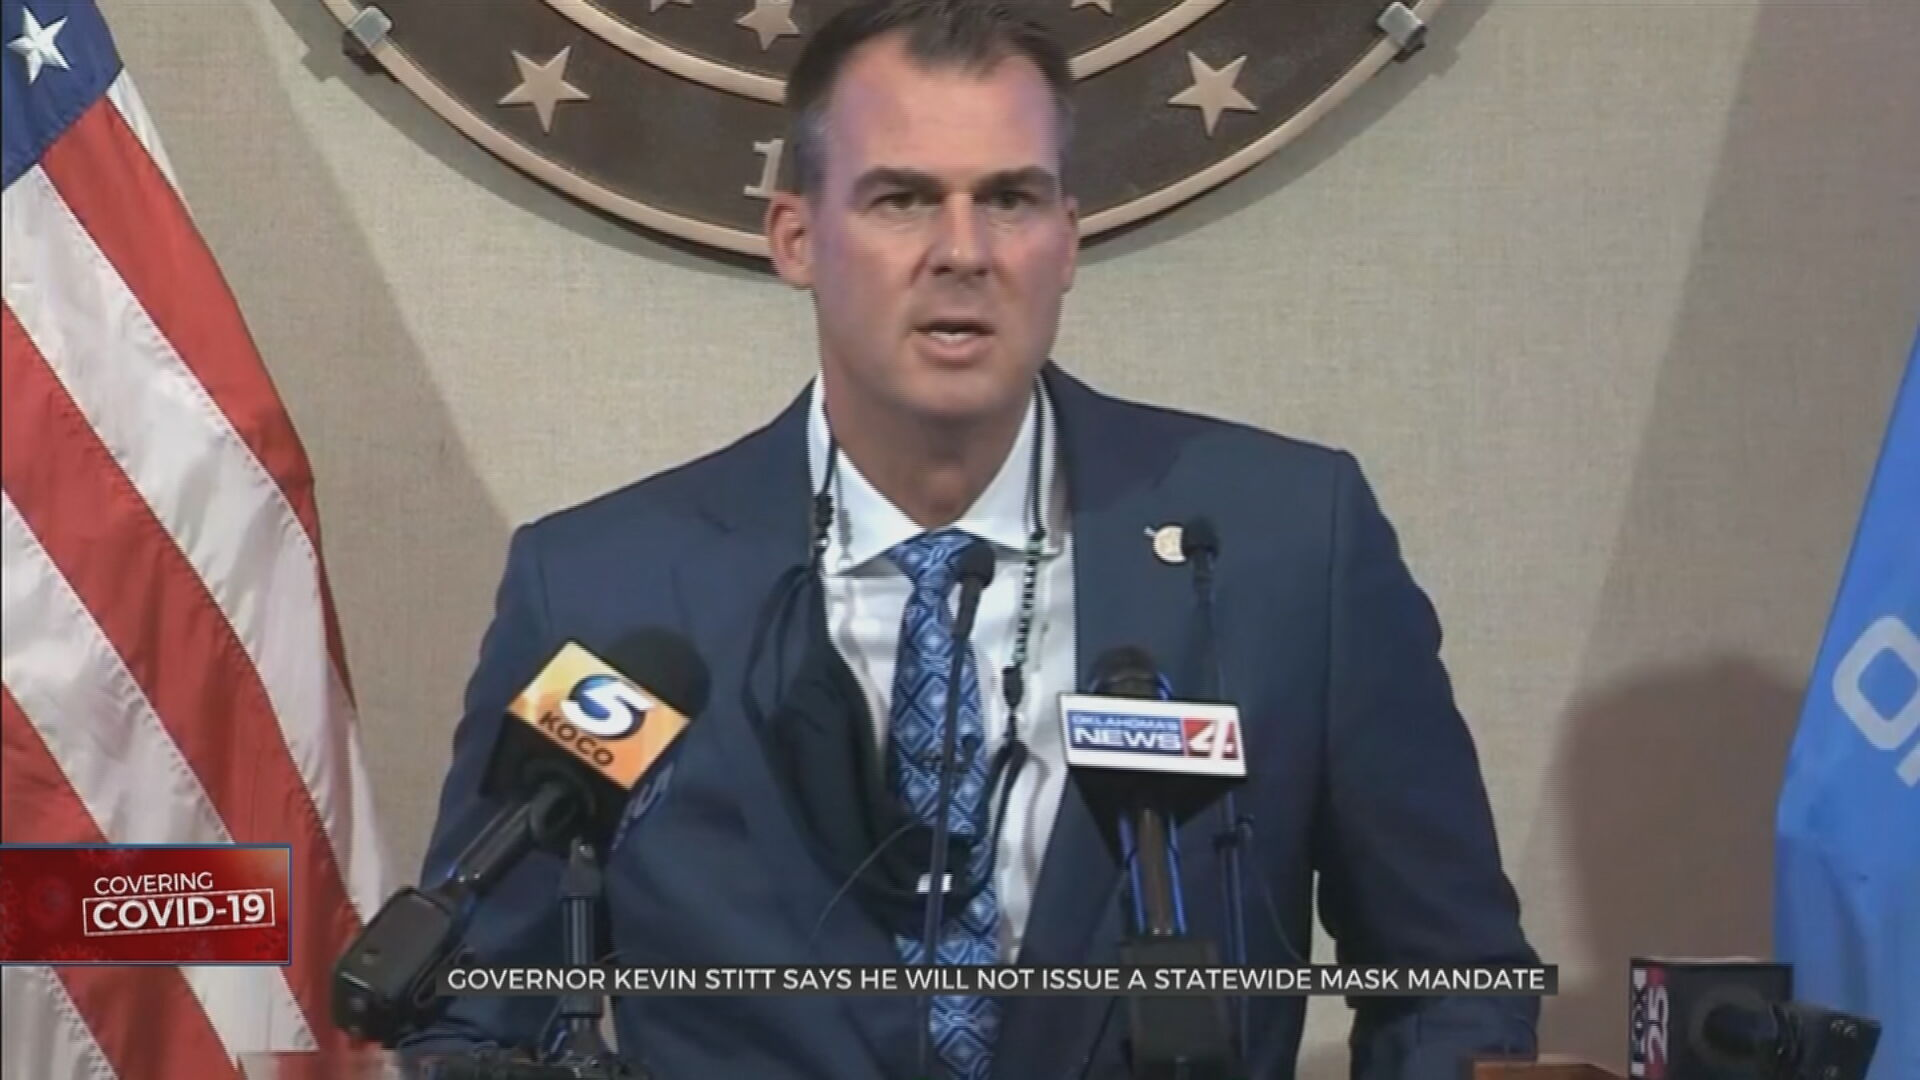 Gov Stitt Offers Updates About COVID-19, Treatments In Oklahoma